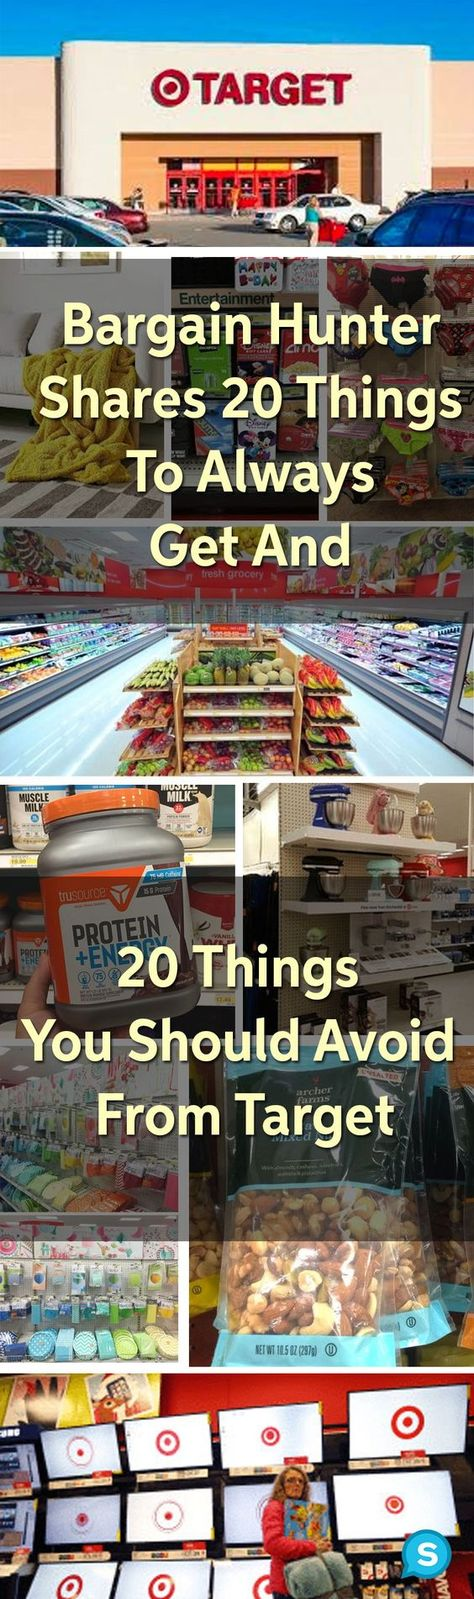 Here are the best and worst things to buy from Target. Whether you're looking for Target home decor or Target clothes, make sure you follow these Target hacks to get the most out of your trip to this store! #target #frugalliving #frugal #shopping